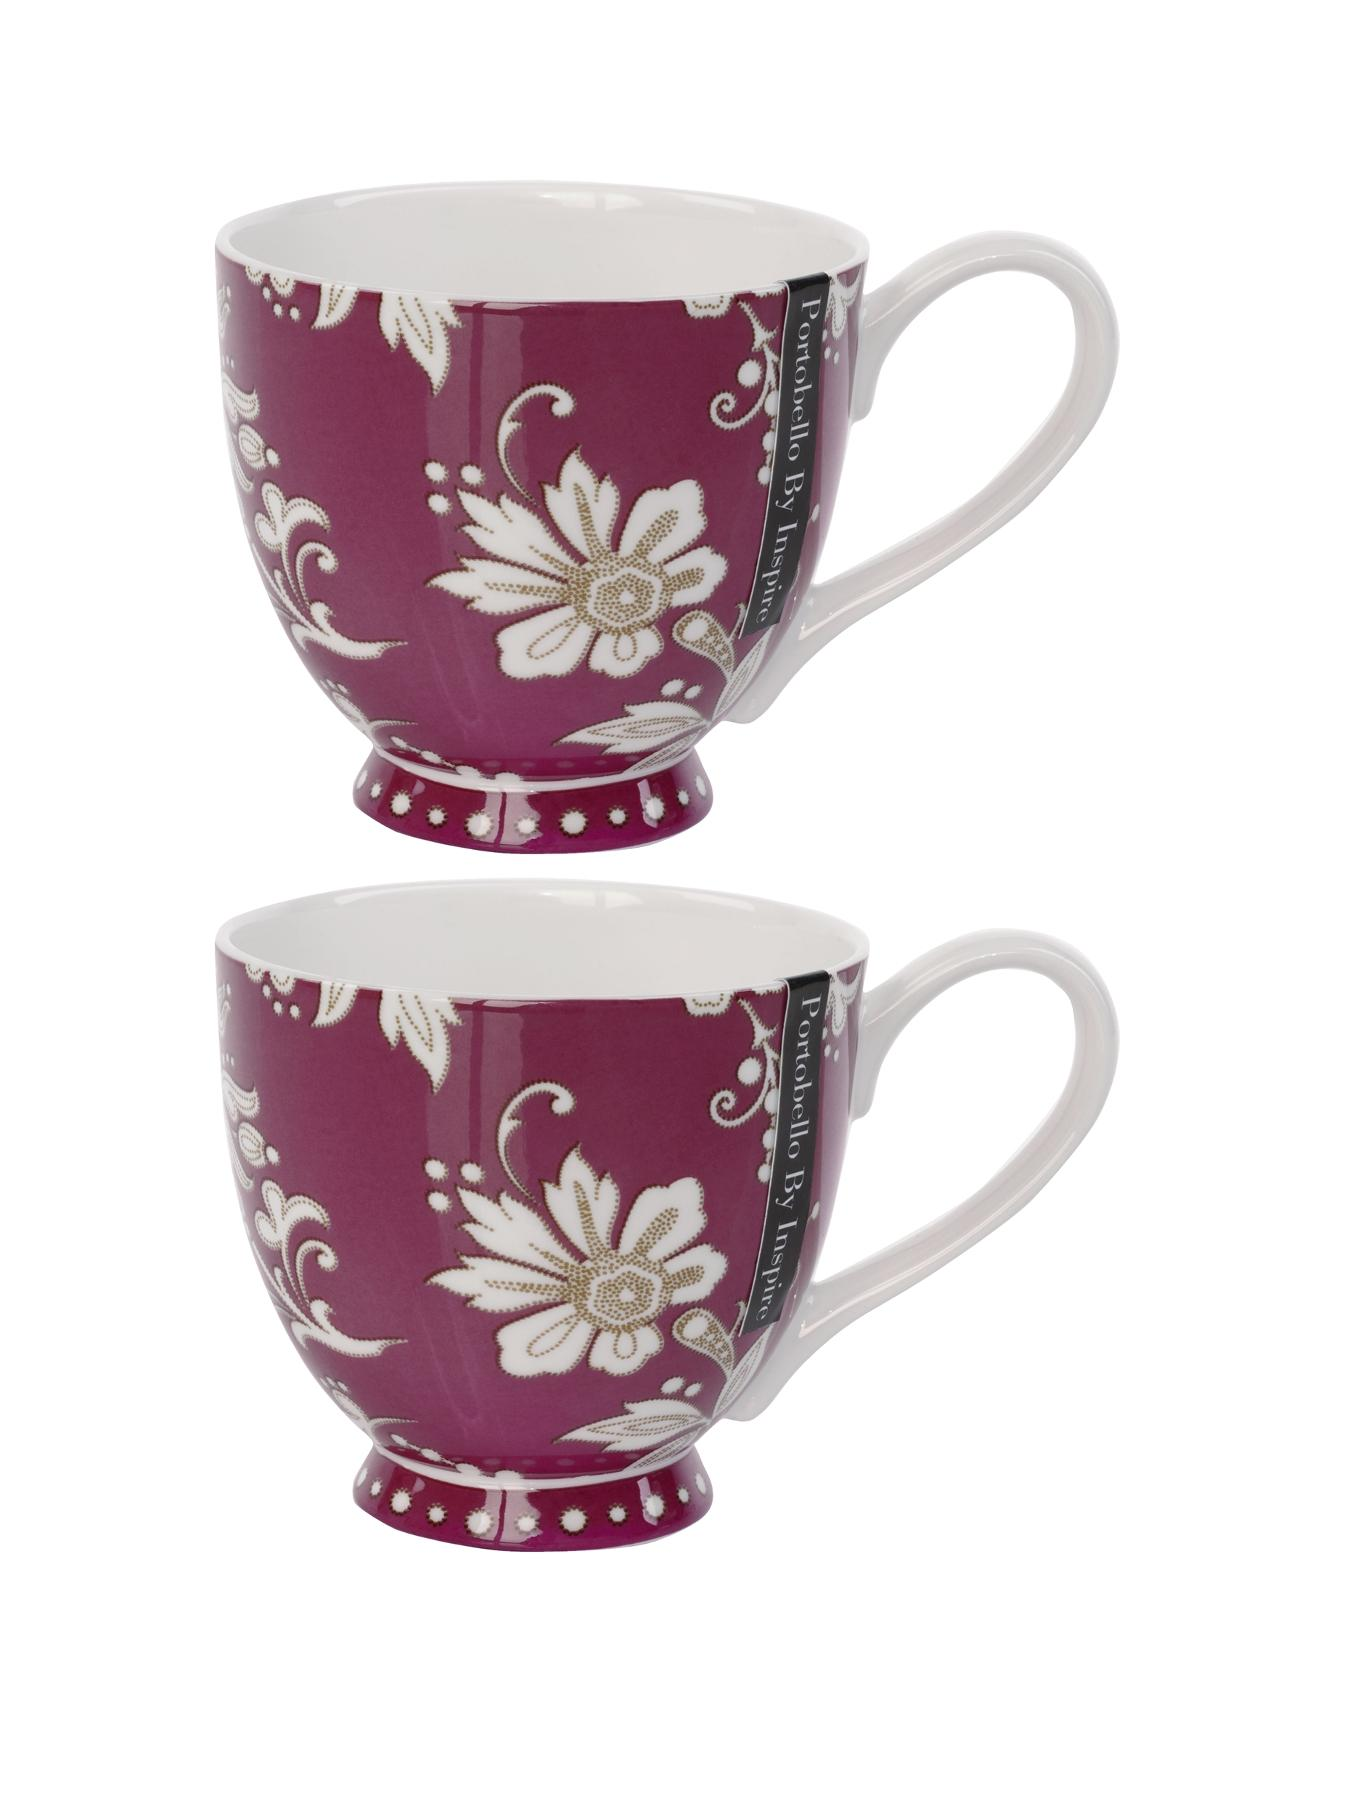 Lexi Burgundy Footed Mugs - Burgundy (set of 2)